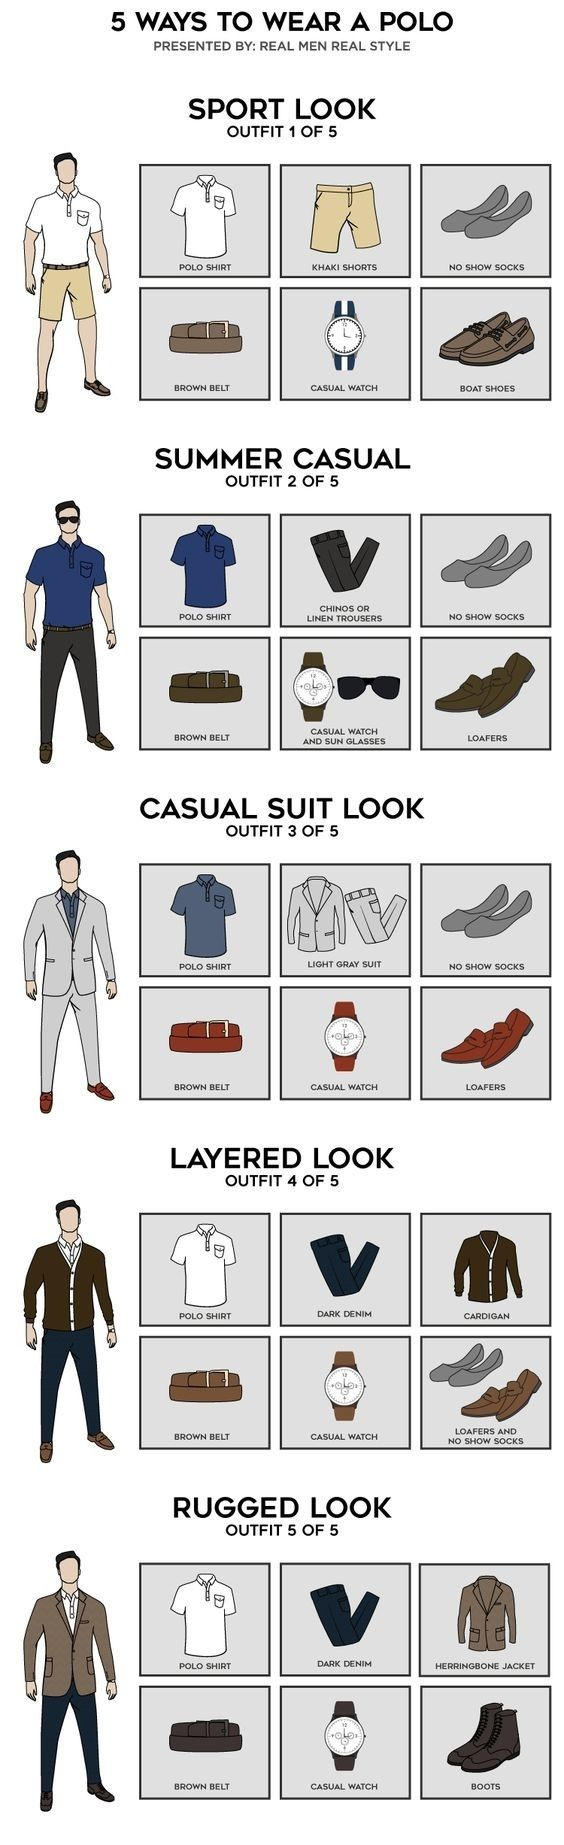 3 Ways To Wear A Polo Shirt Shirt Men Outfit Fashion Style